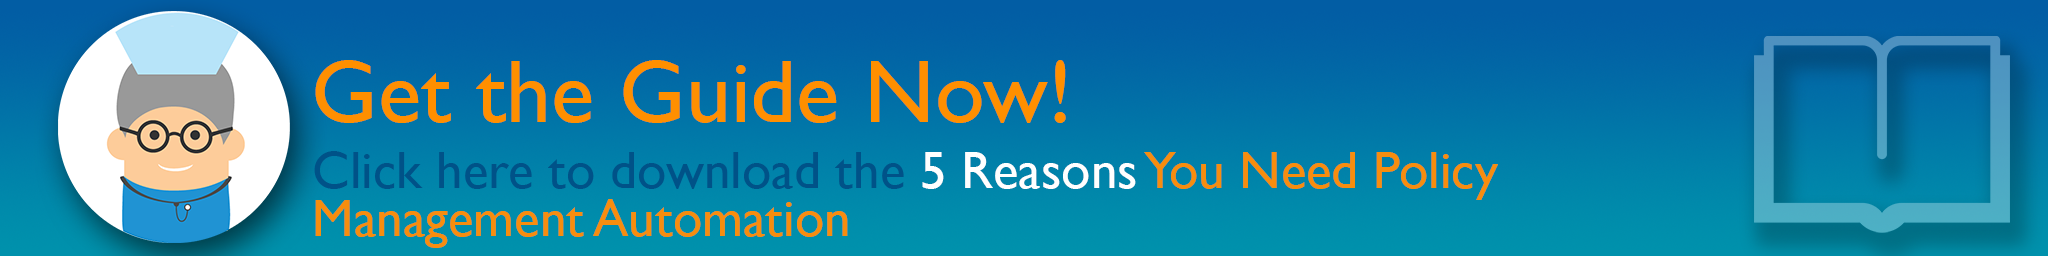 5 Reasons You Need Policy Management Automation